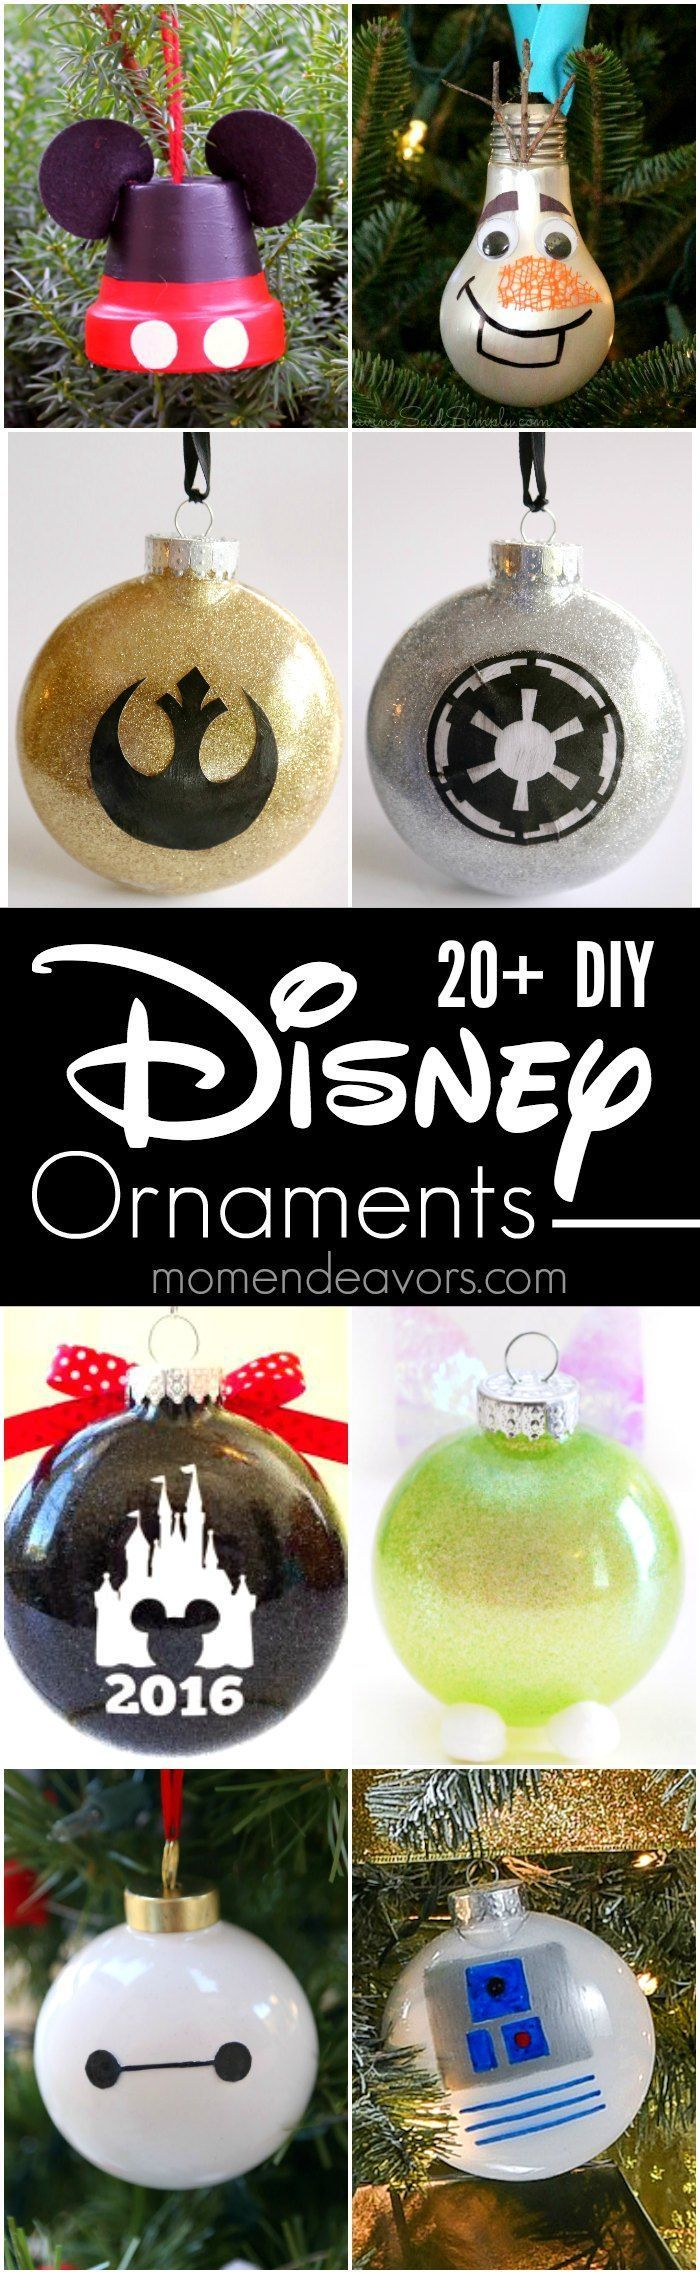 20+ Best Diy Disney Ornaments  Add Some Disney Magic To Your Christmas  Tree With